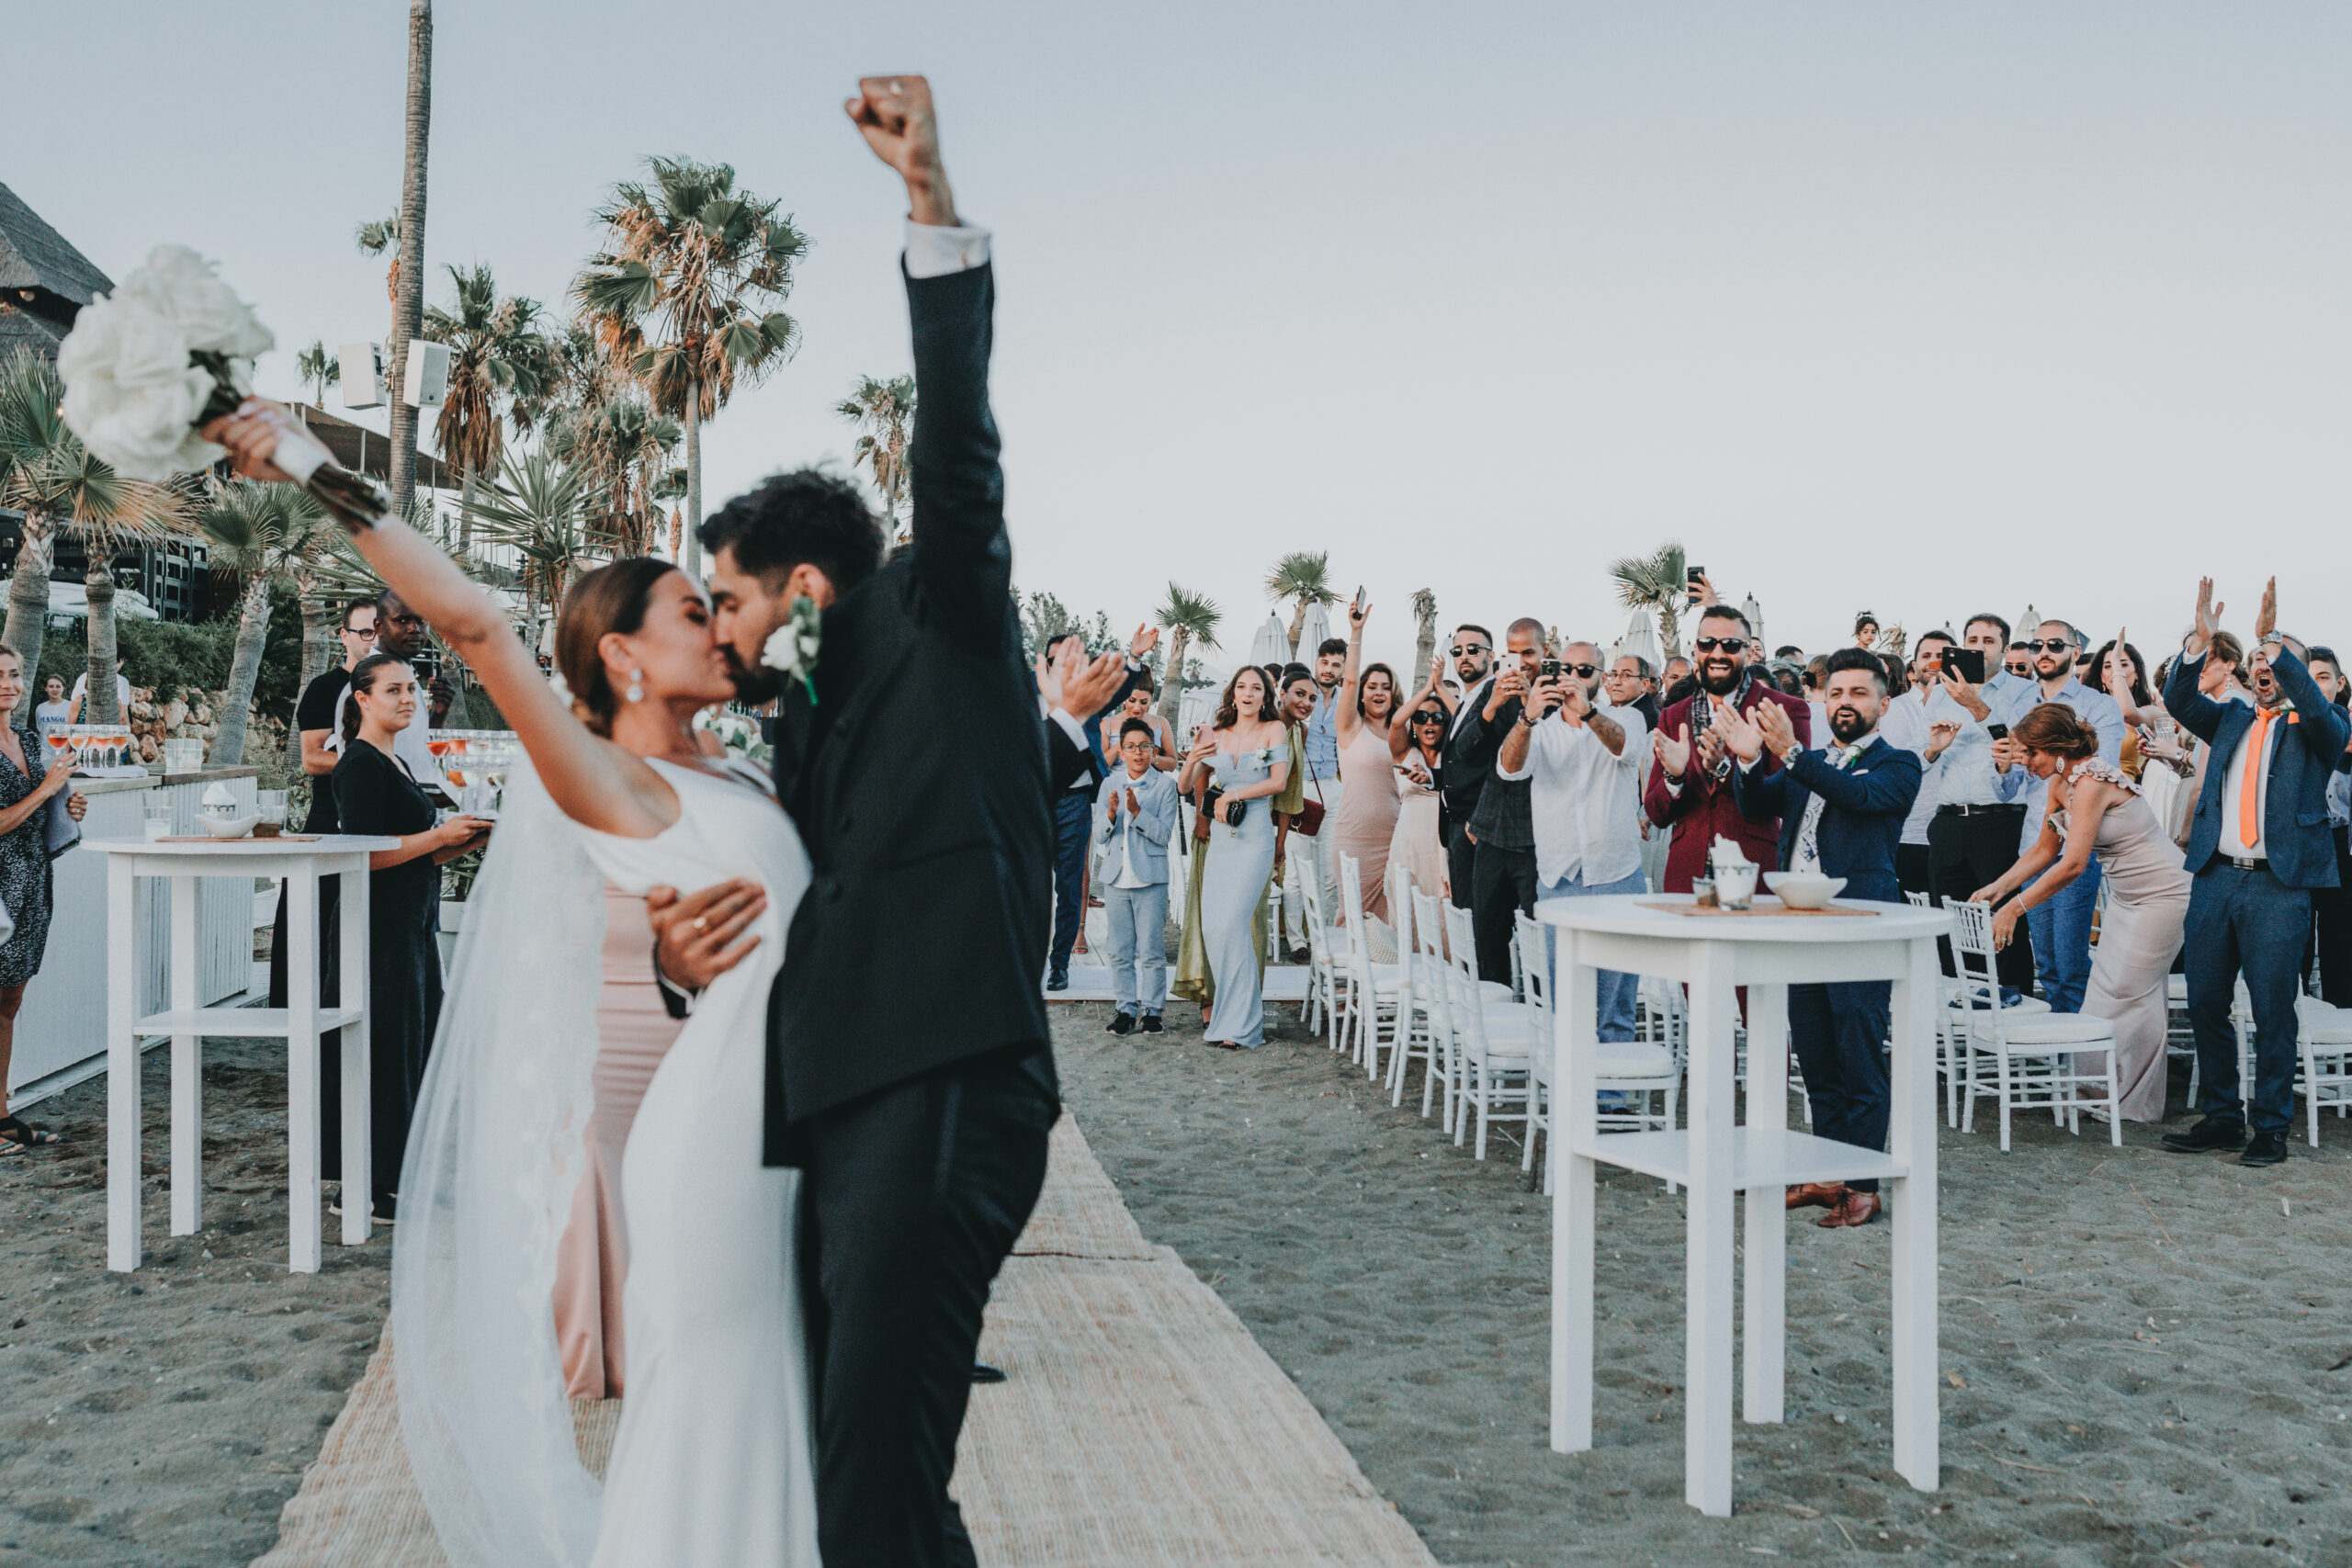 First kiss after walking back down the aisle as newlyweds - Gino K photography